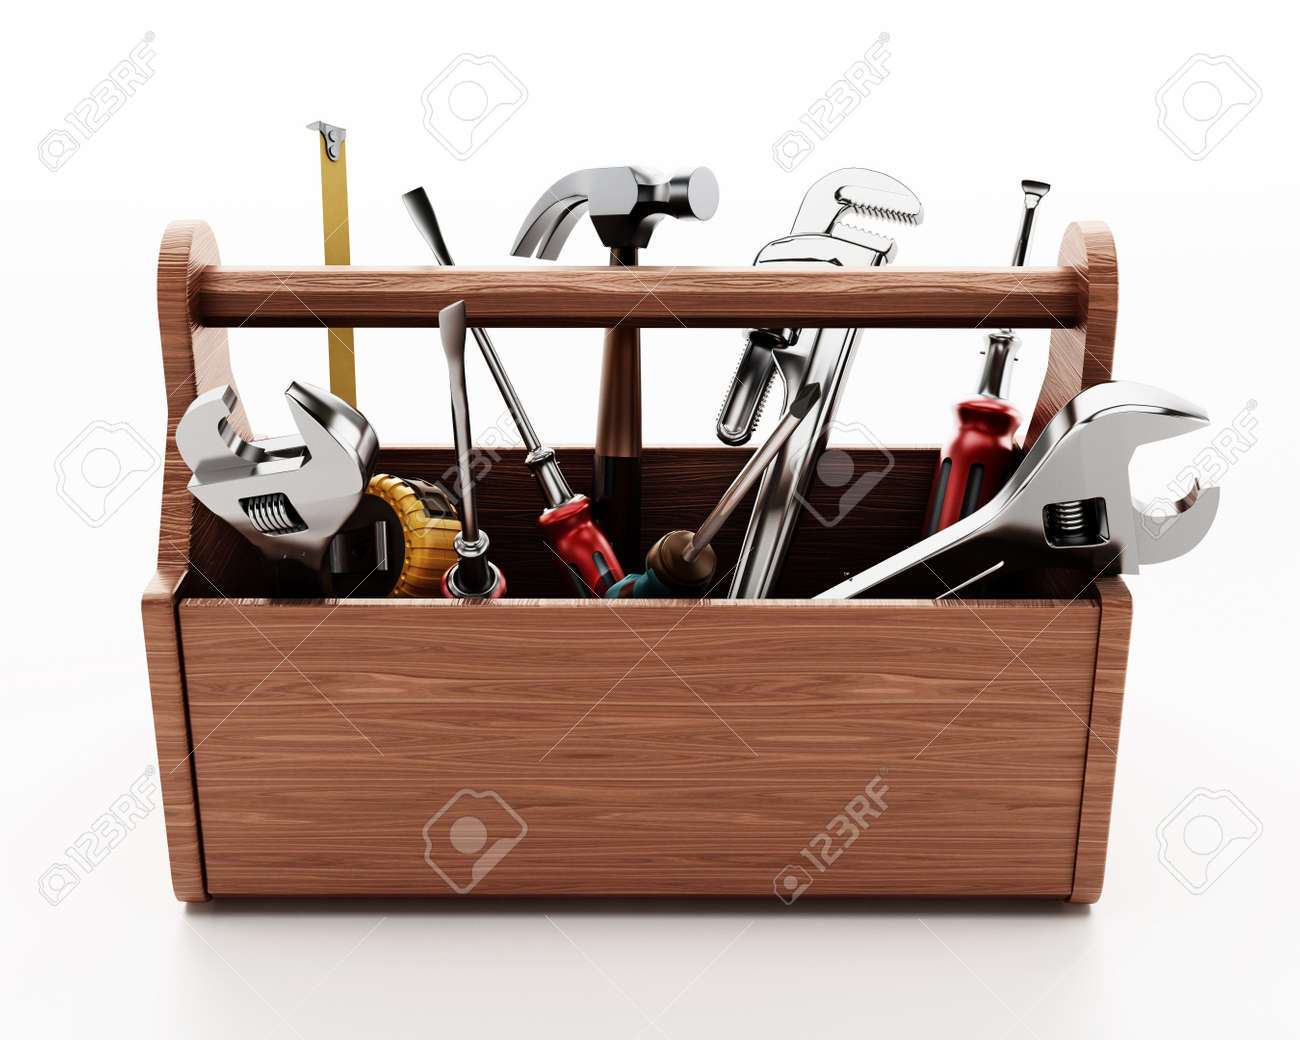 Wooden toolbox with various hand tools isolated on white background. 3D illustration. - 171774651